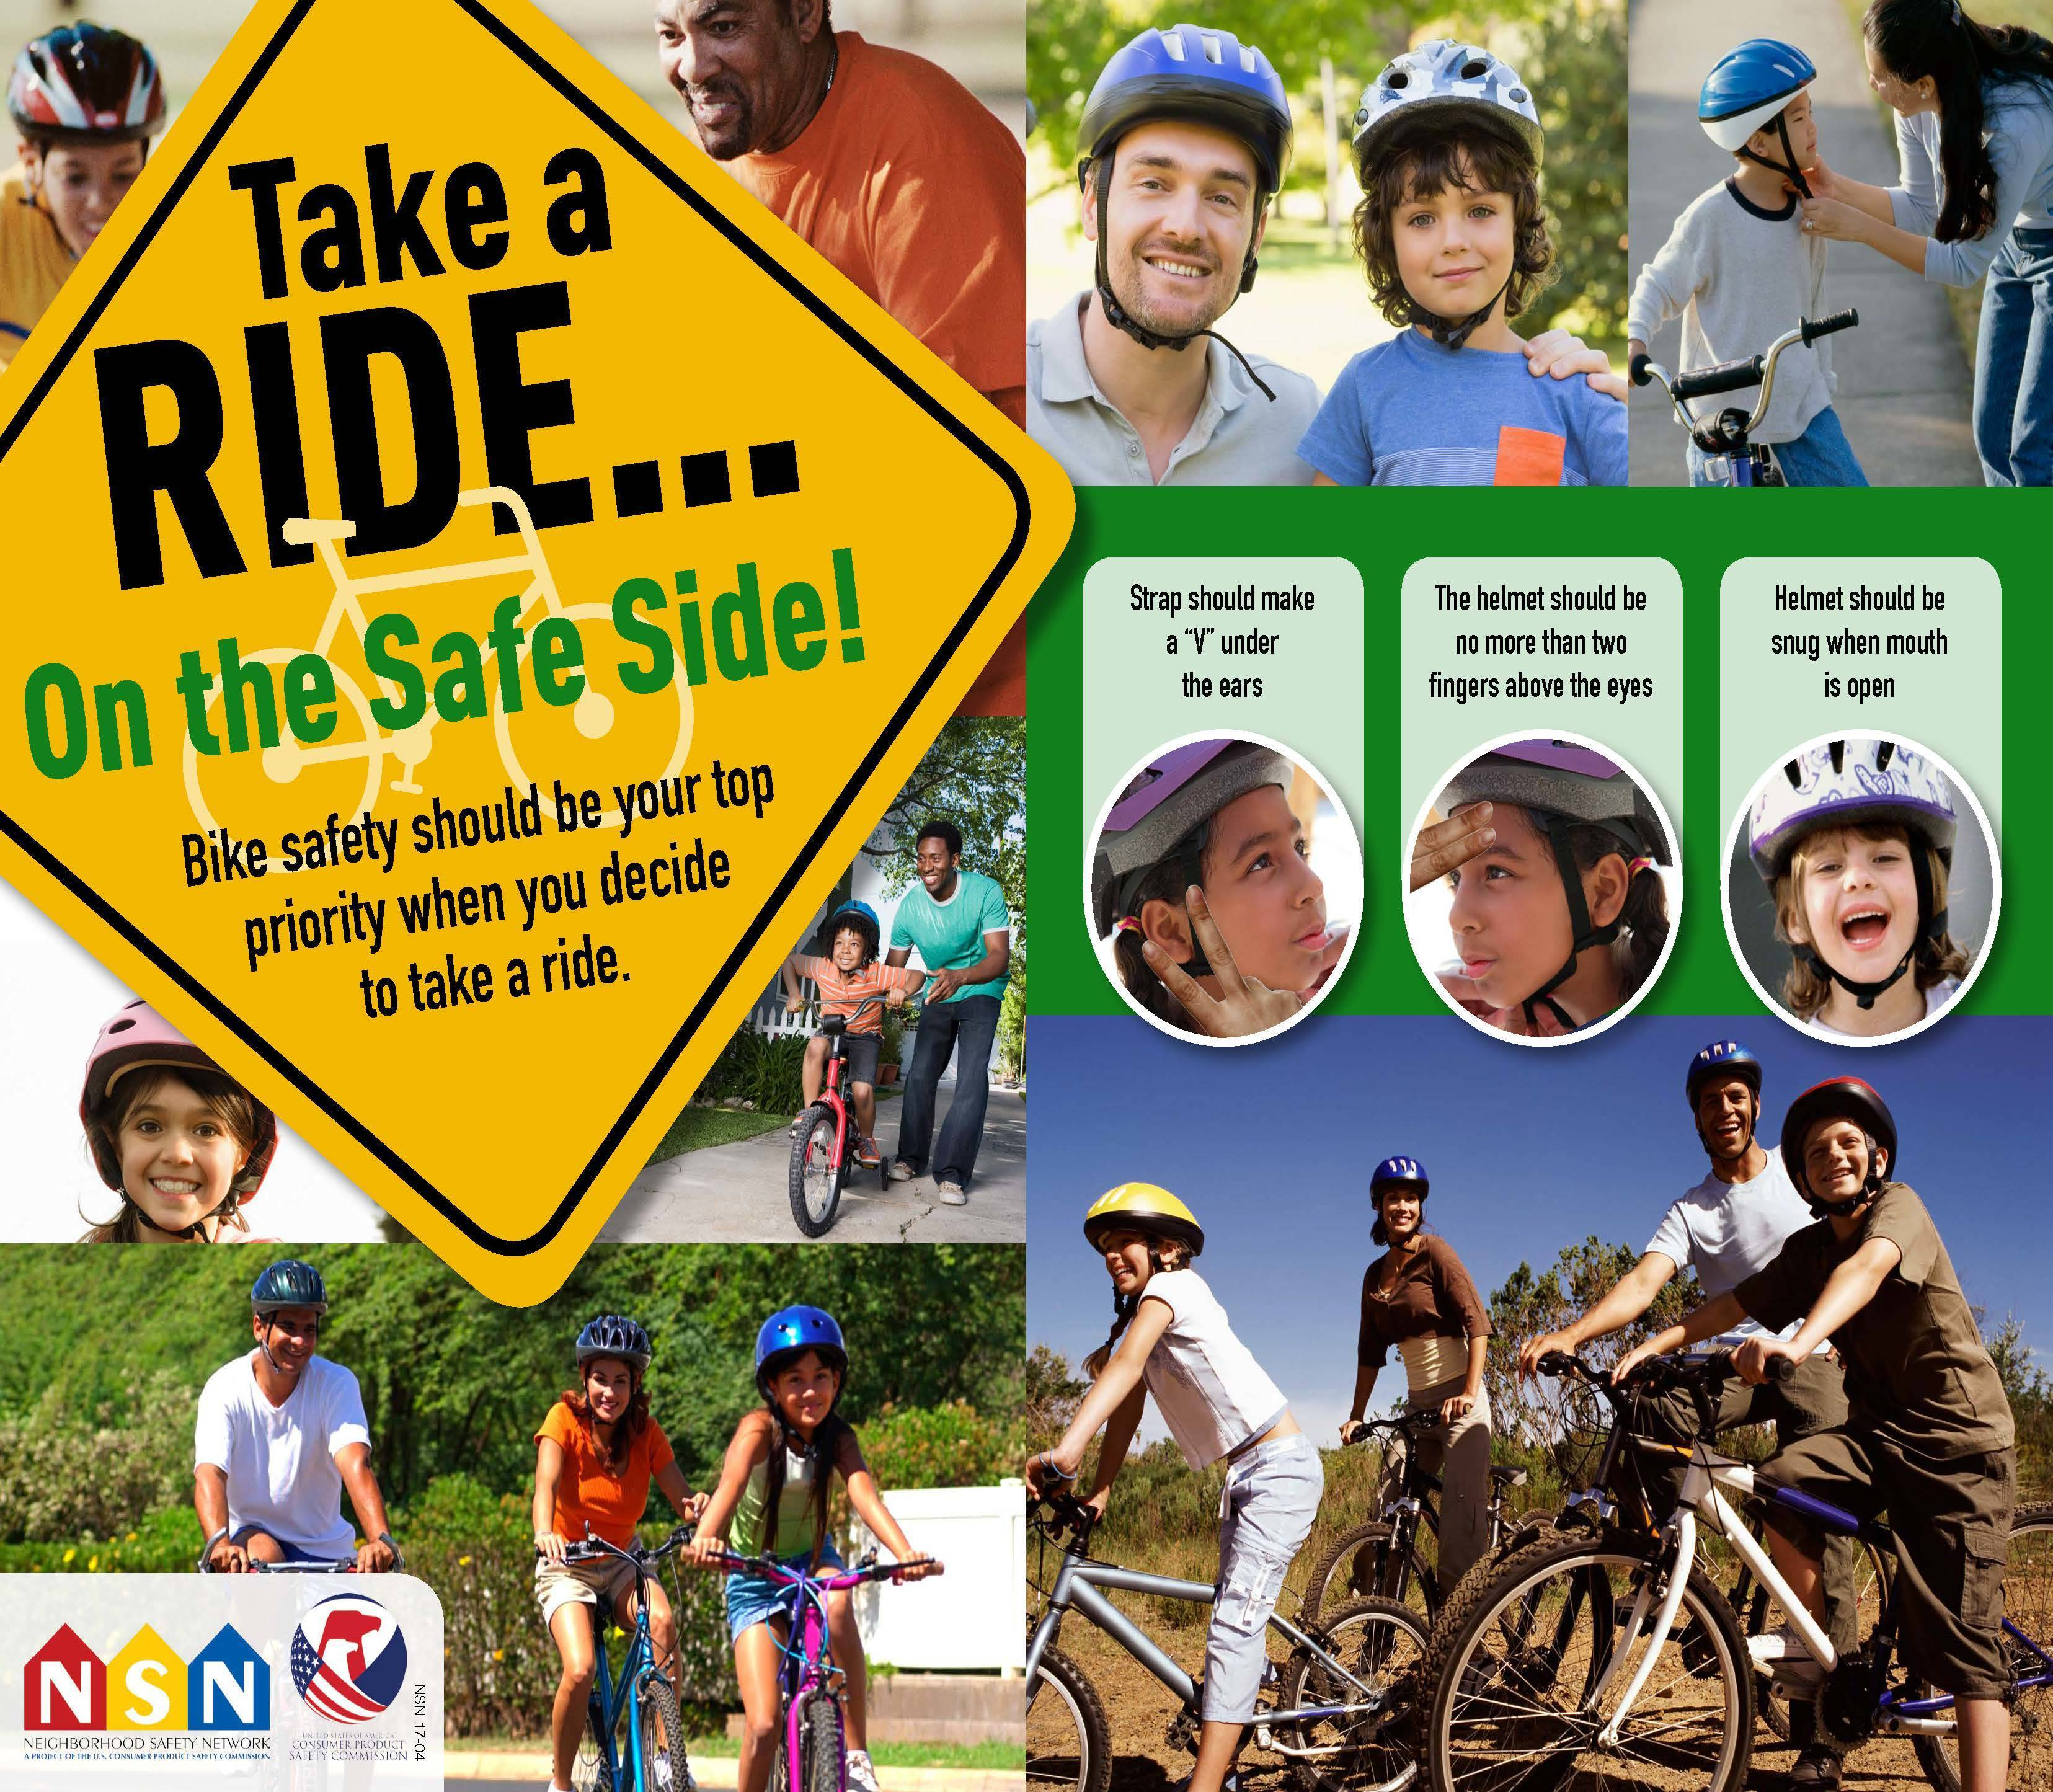 8b41af0d1bed82192351_Bike_Safety_via_USCPSC.jpg